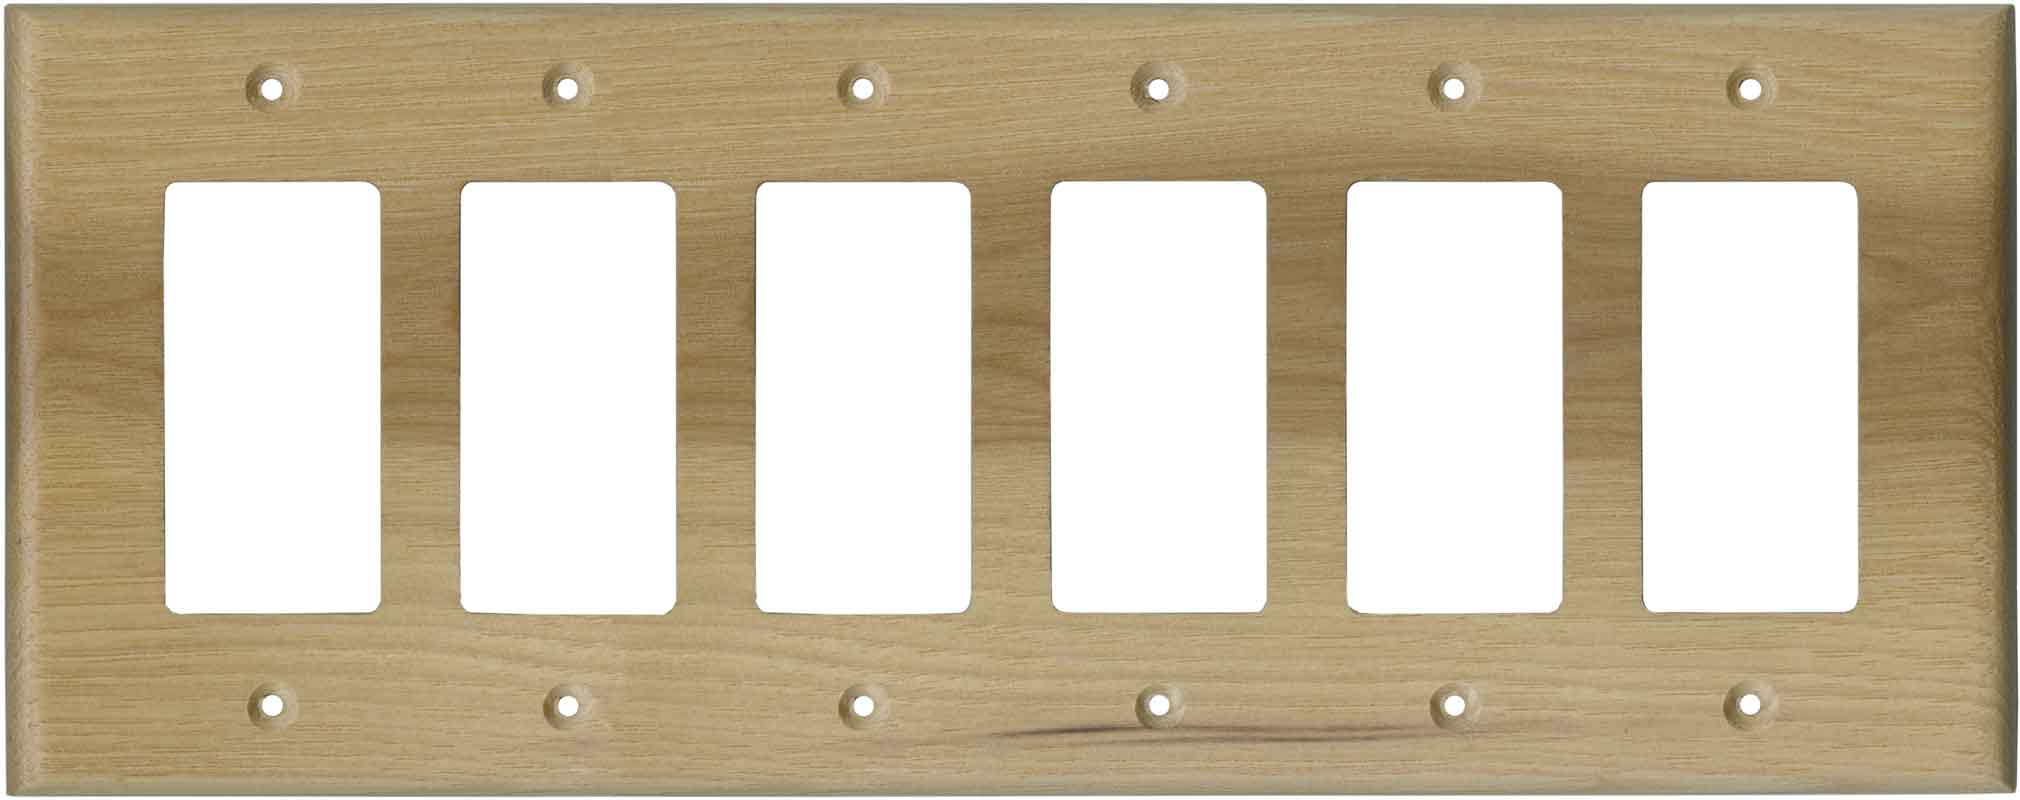 Hickory Unfinished 6 GFCI Rocker Decora Switch Covers